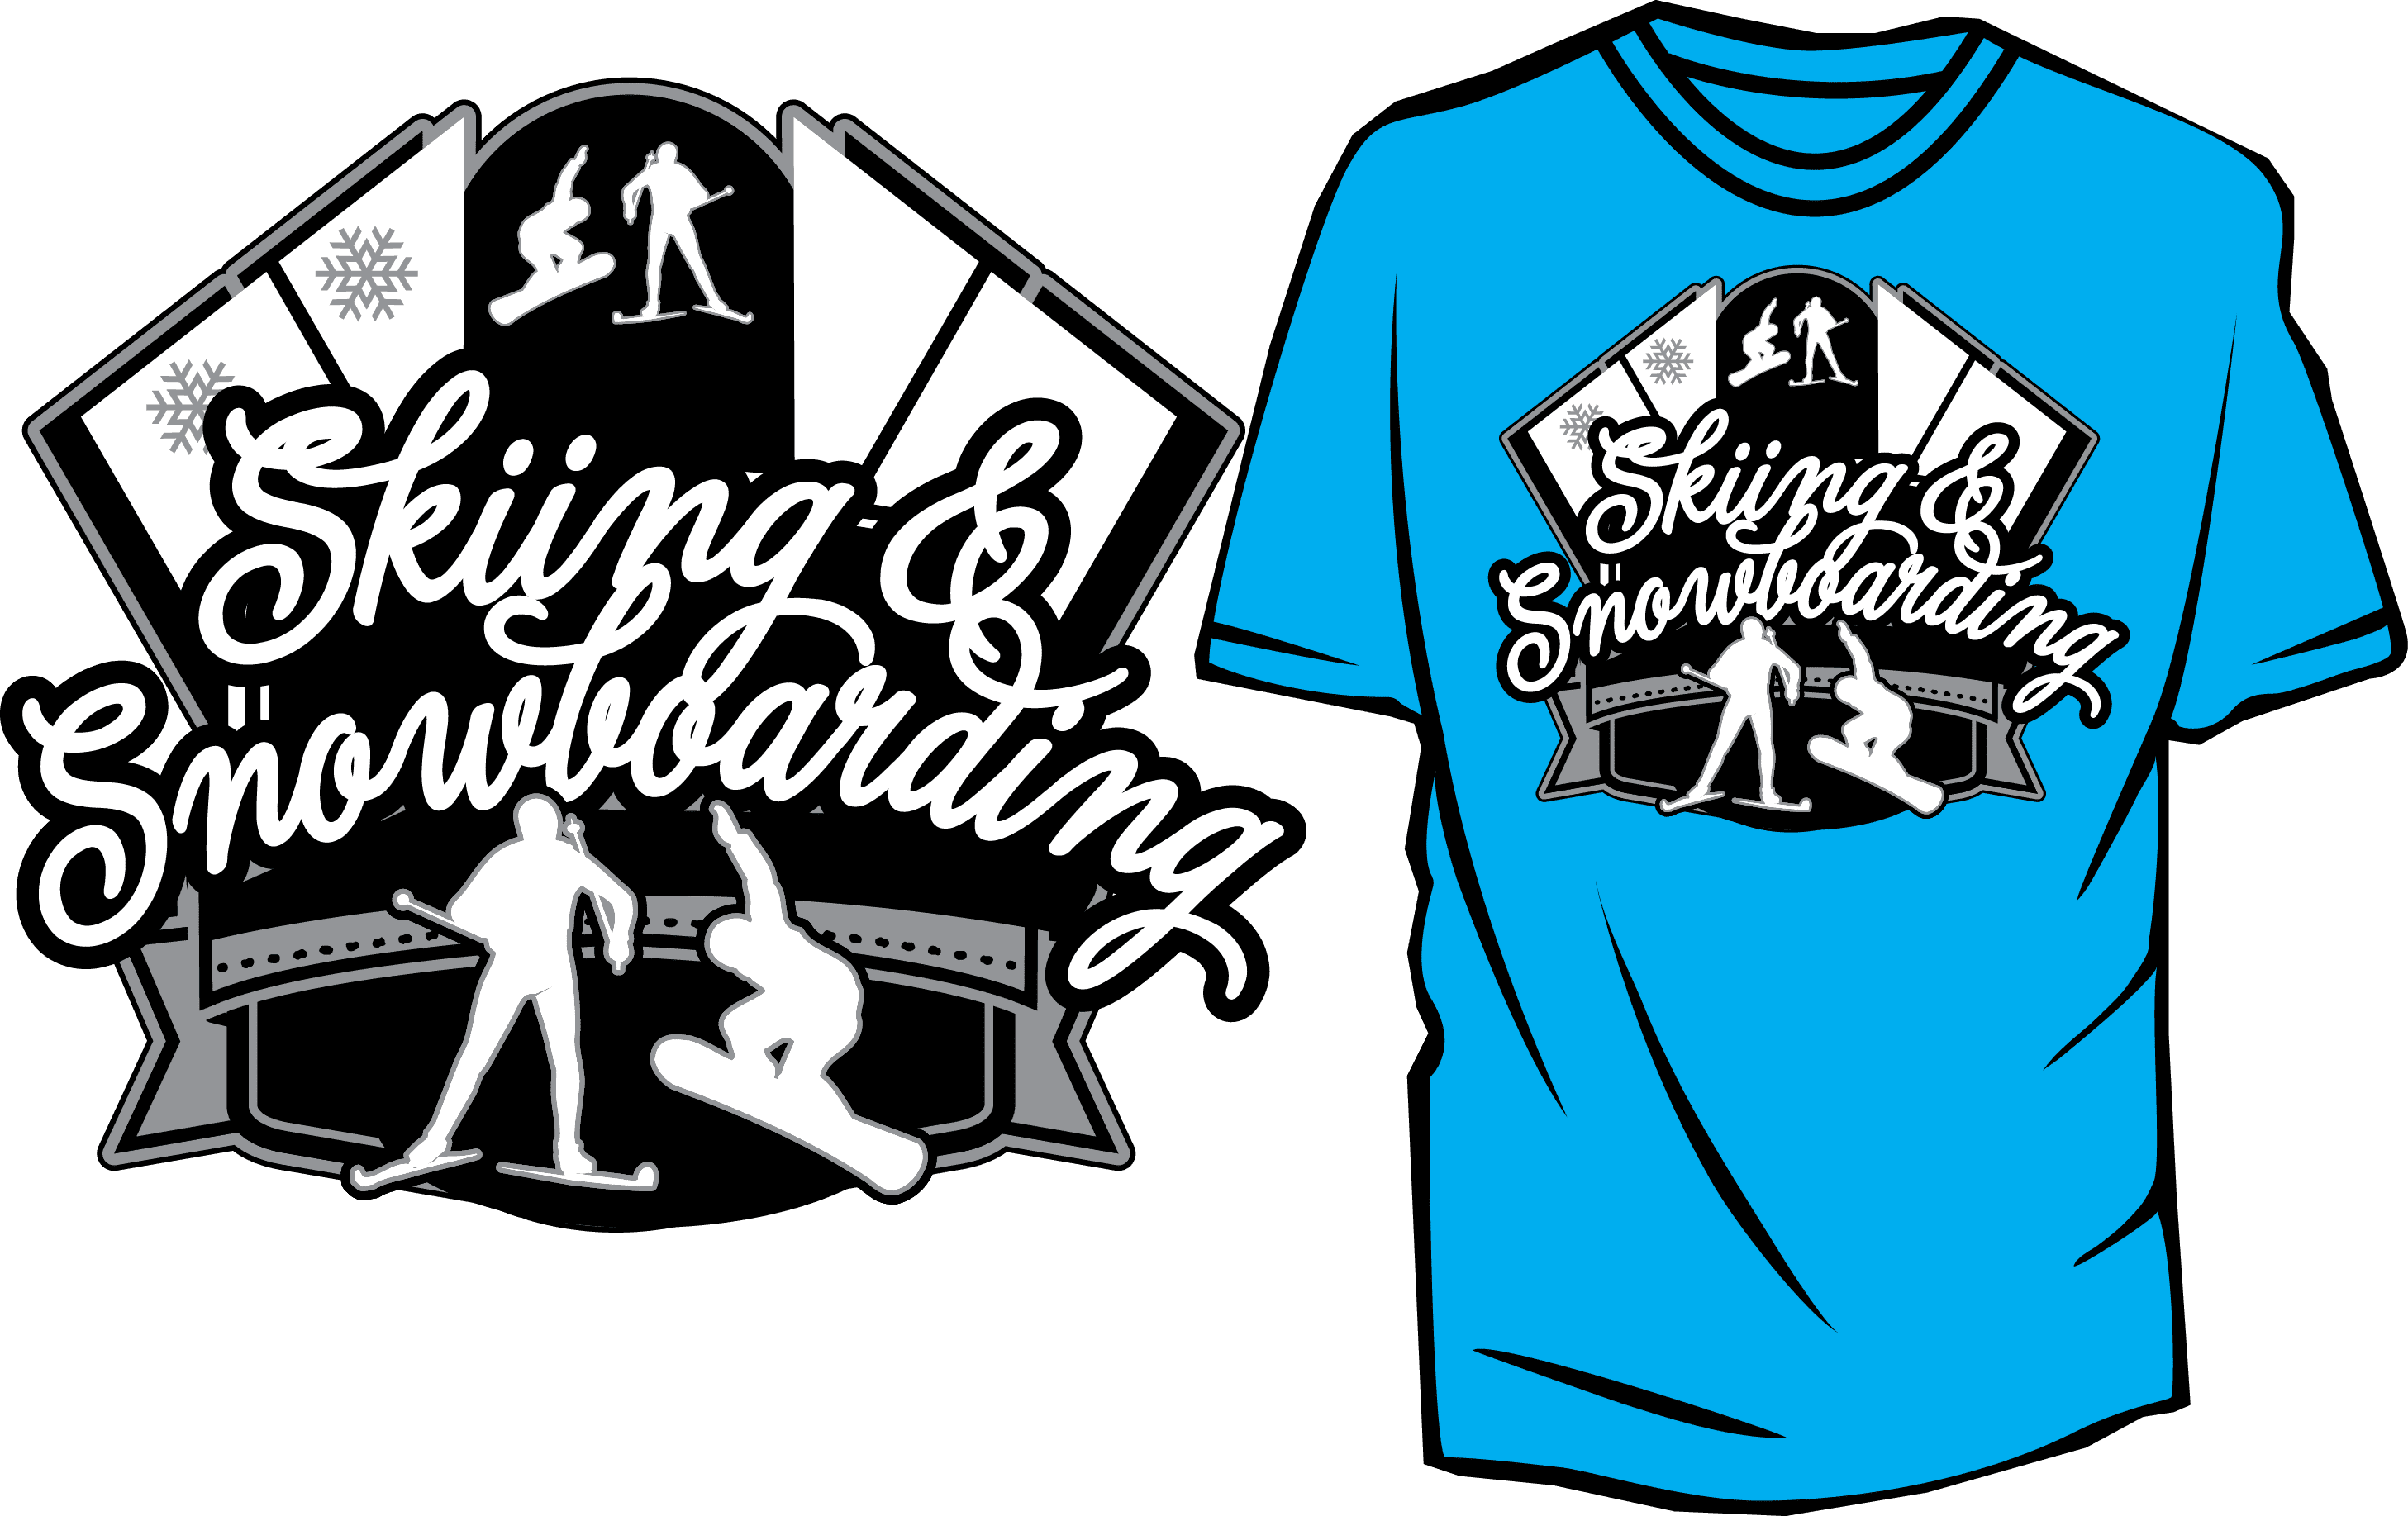 SKIING AND SNOWBOARDING FREE VECTOR DESIGN FOR TSHIRT AND APPREL DOWLOAD print